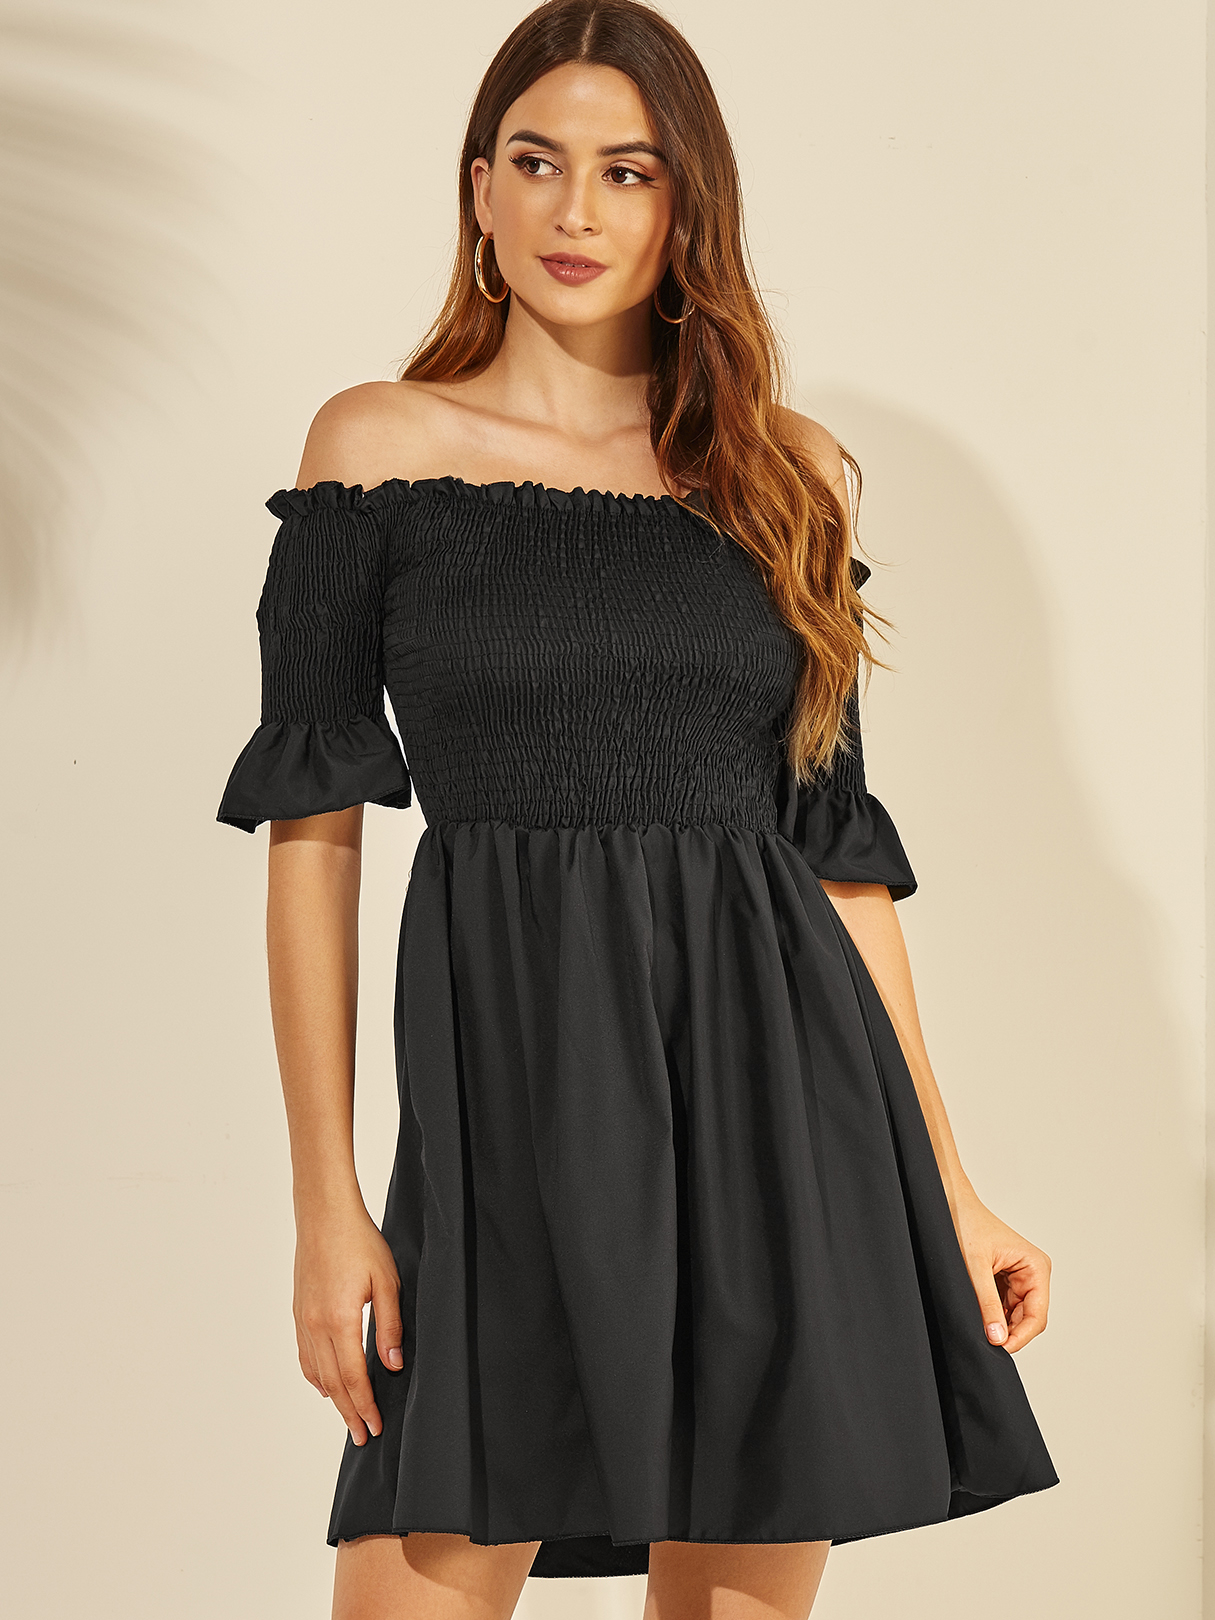 Black Backless Design Off The Shoulder Half Sleeves Dress ROBES Noir  xs|s|m|l Yoins